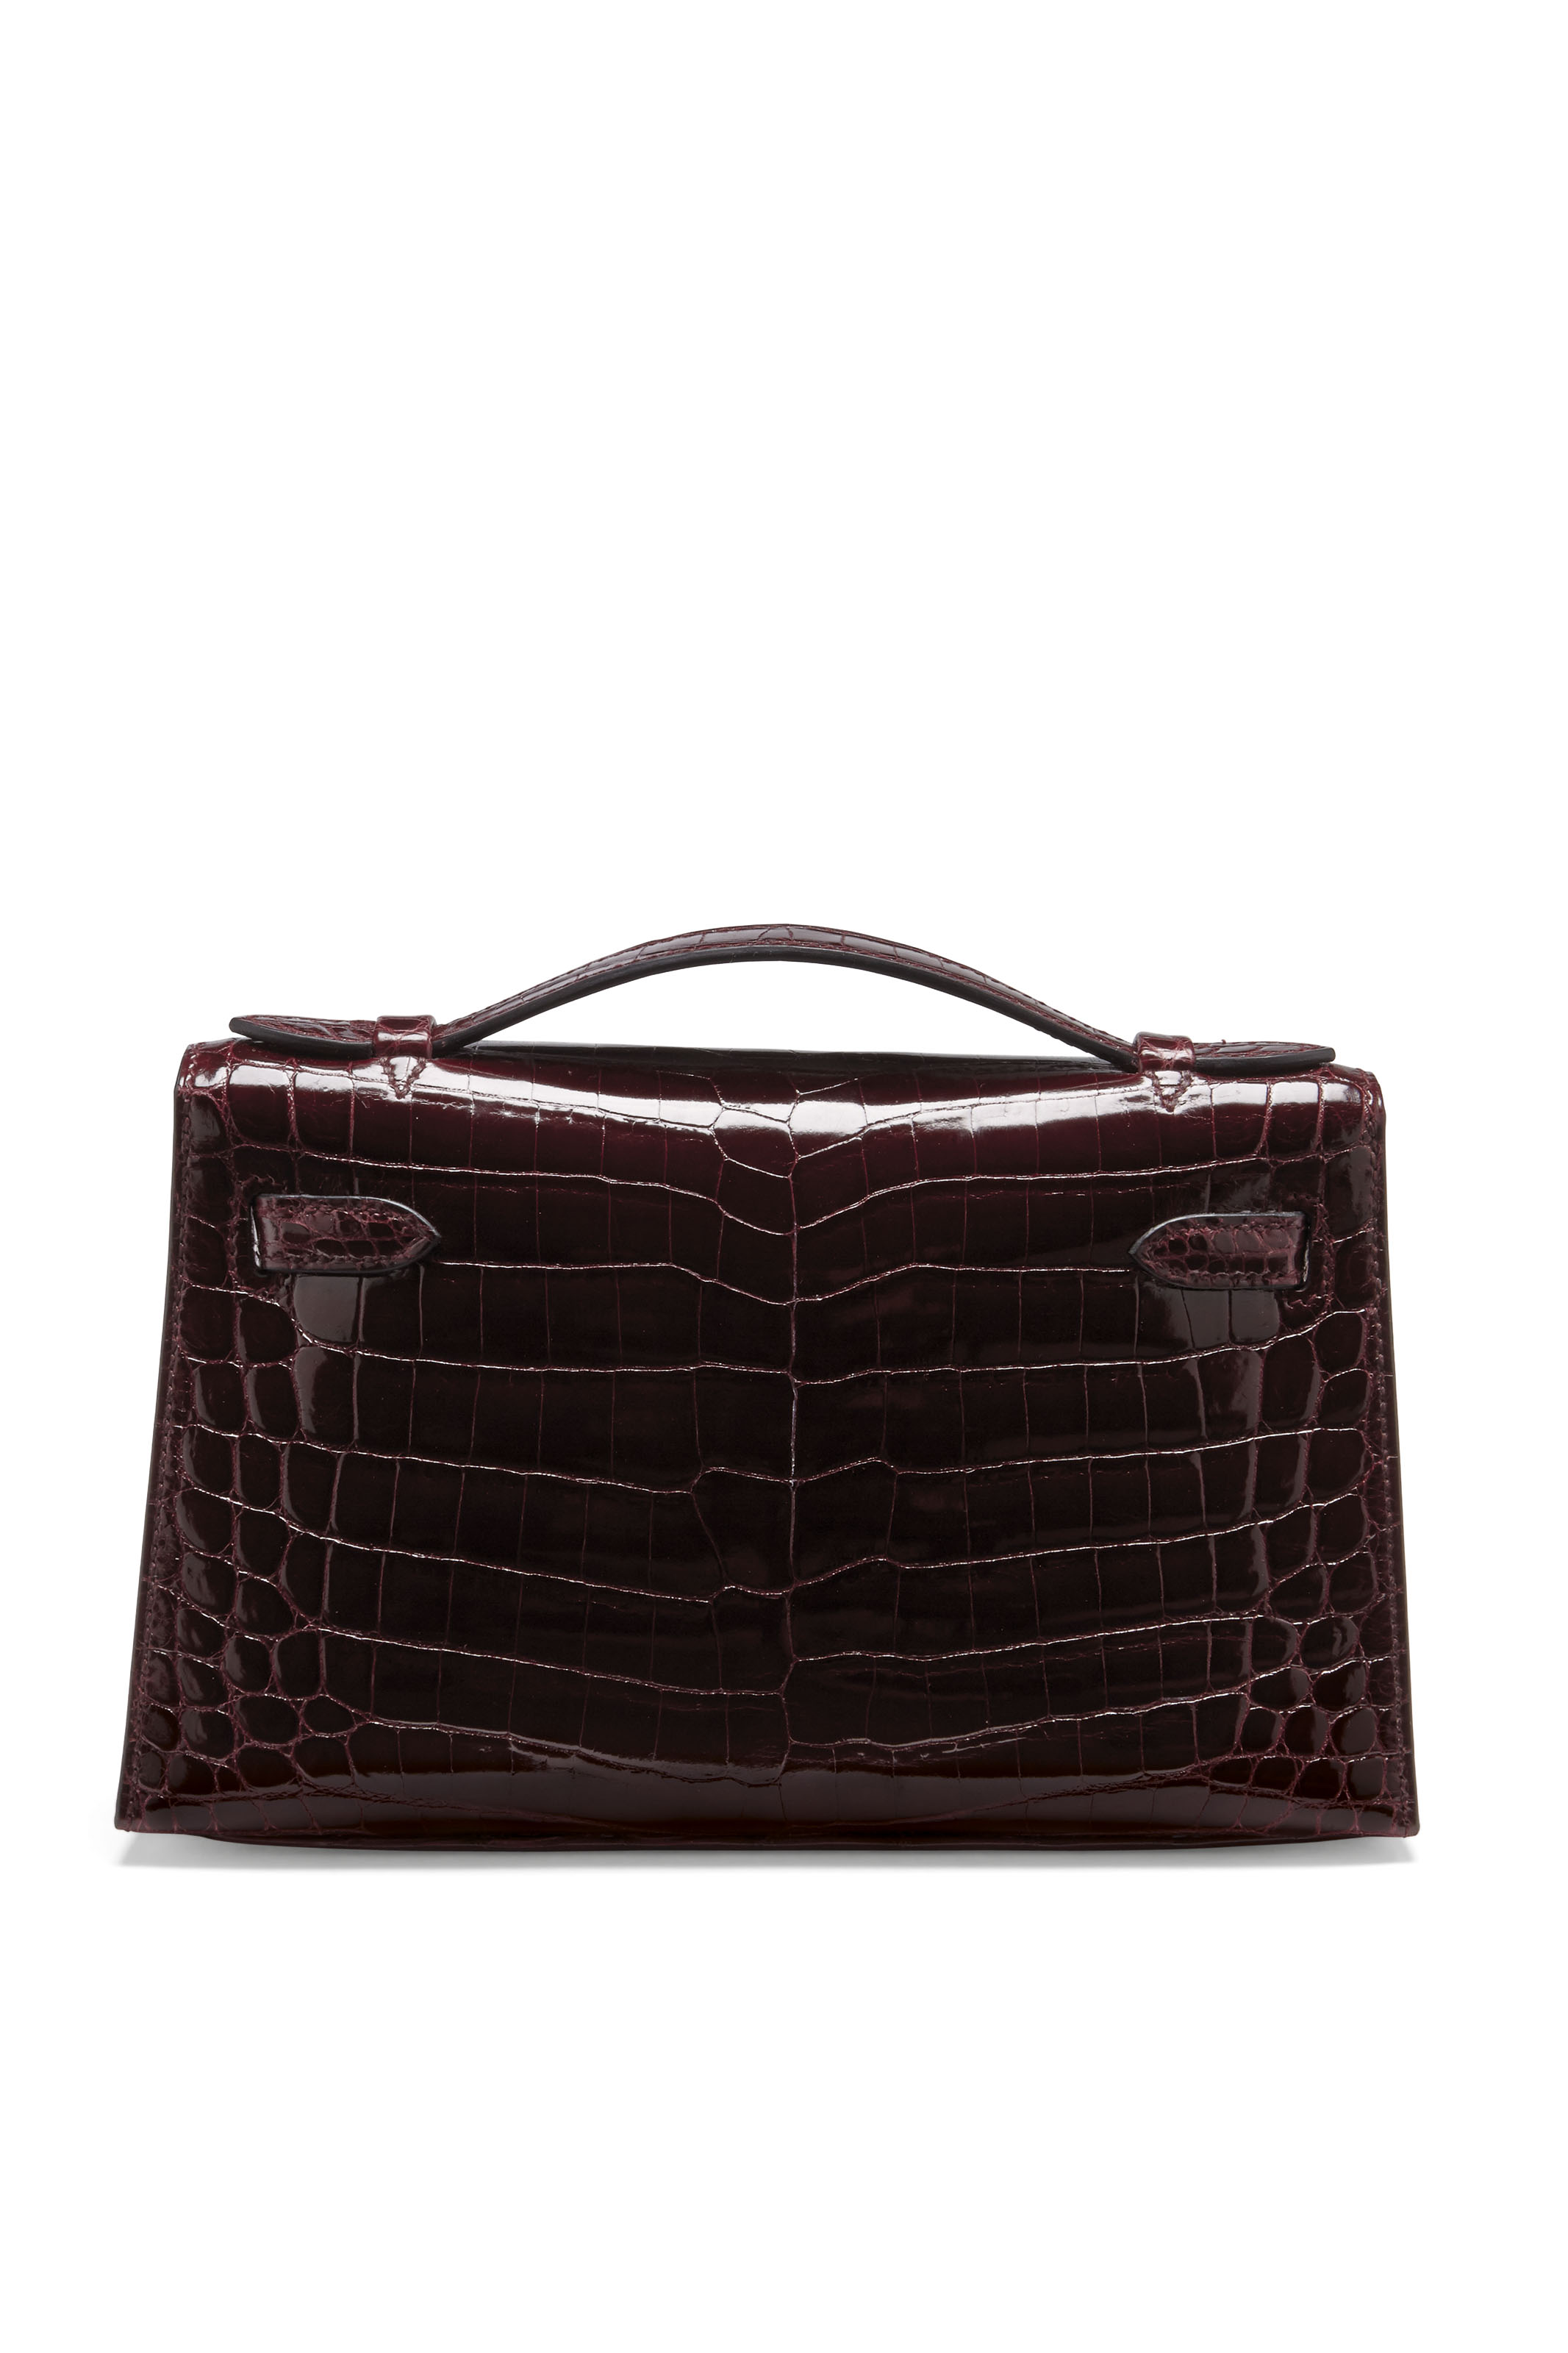 POCHETTE KELLY EN CROCODILE NI